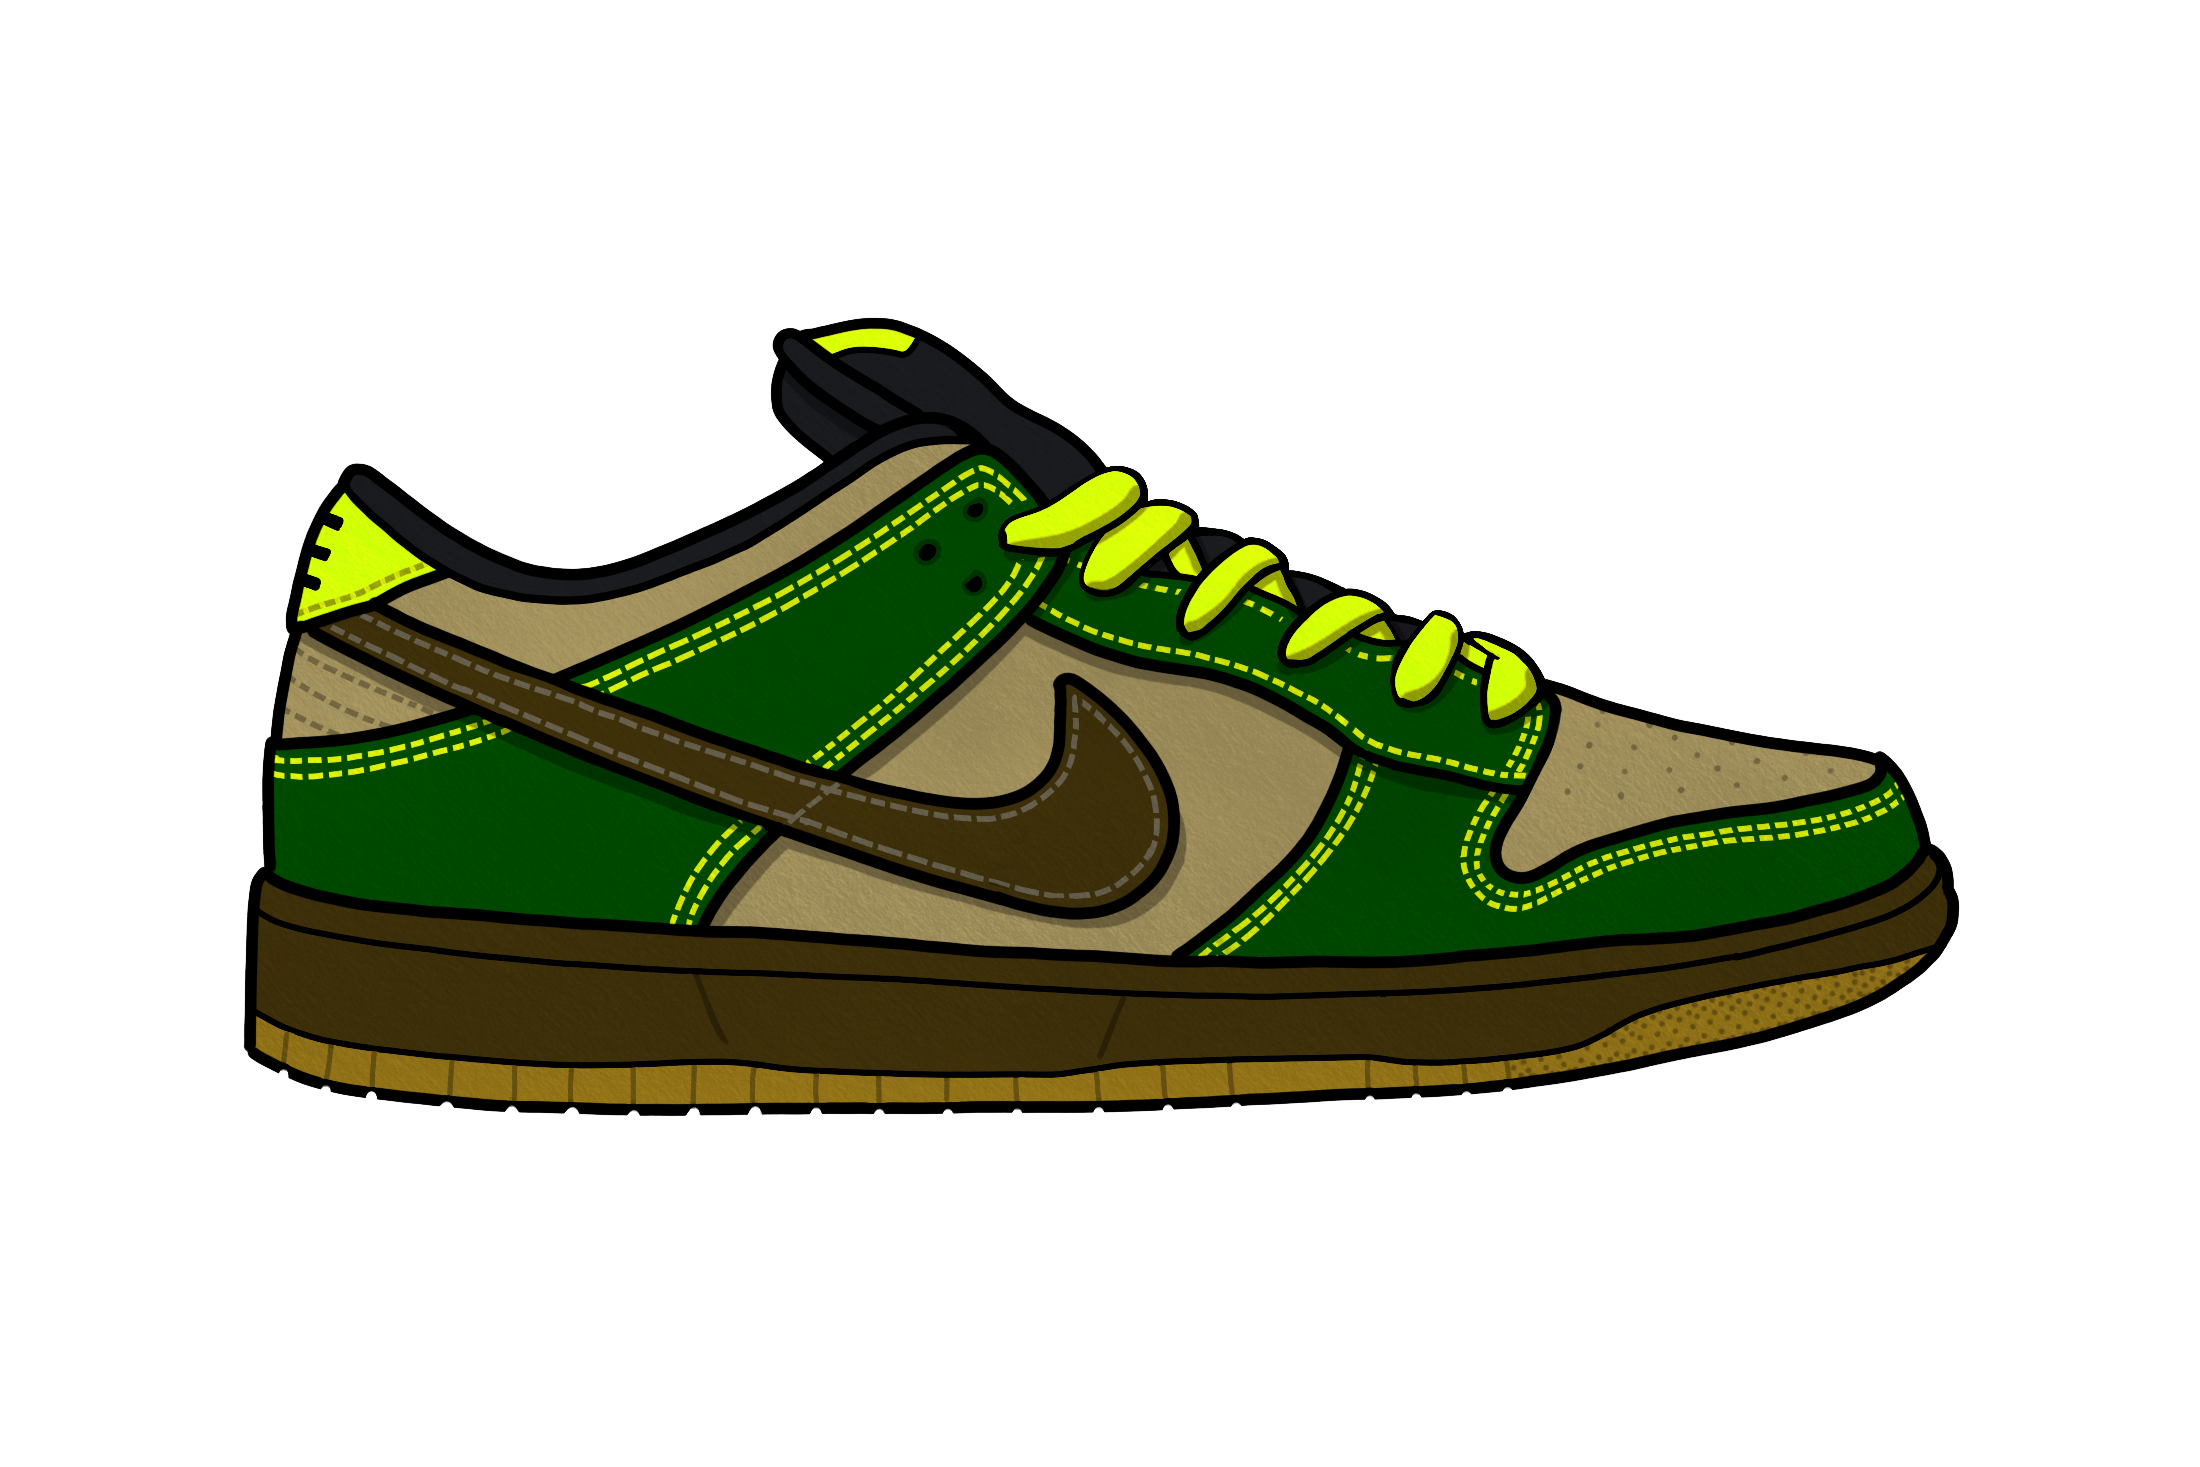 Supa s second entry into the SB Dunk canon put his team c826584387